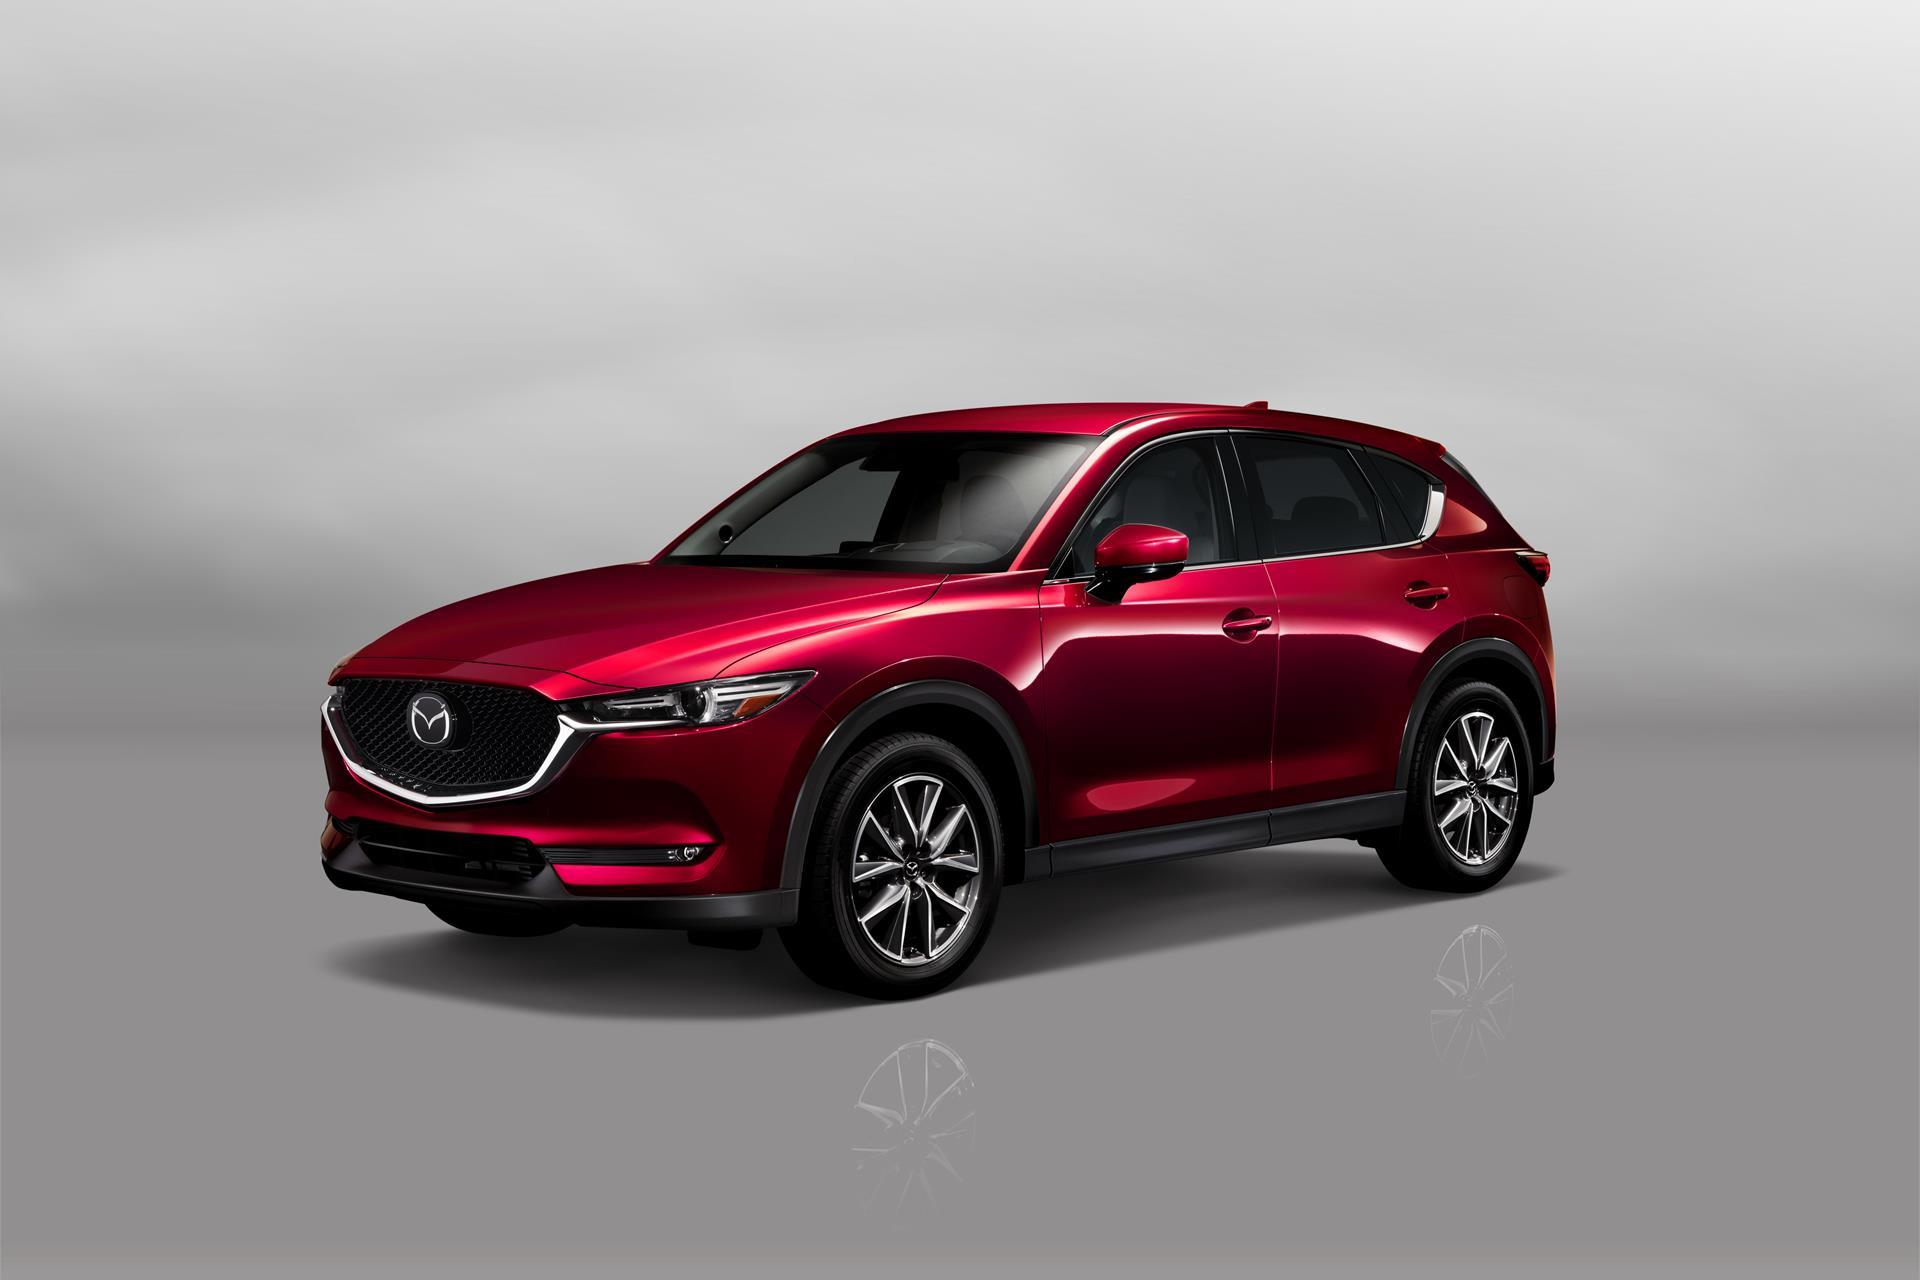 2017 mazda cx 5 news and information. Black Bedroom Furniture Sets. Home Design Ideas